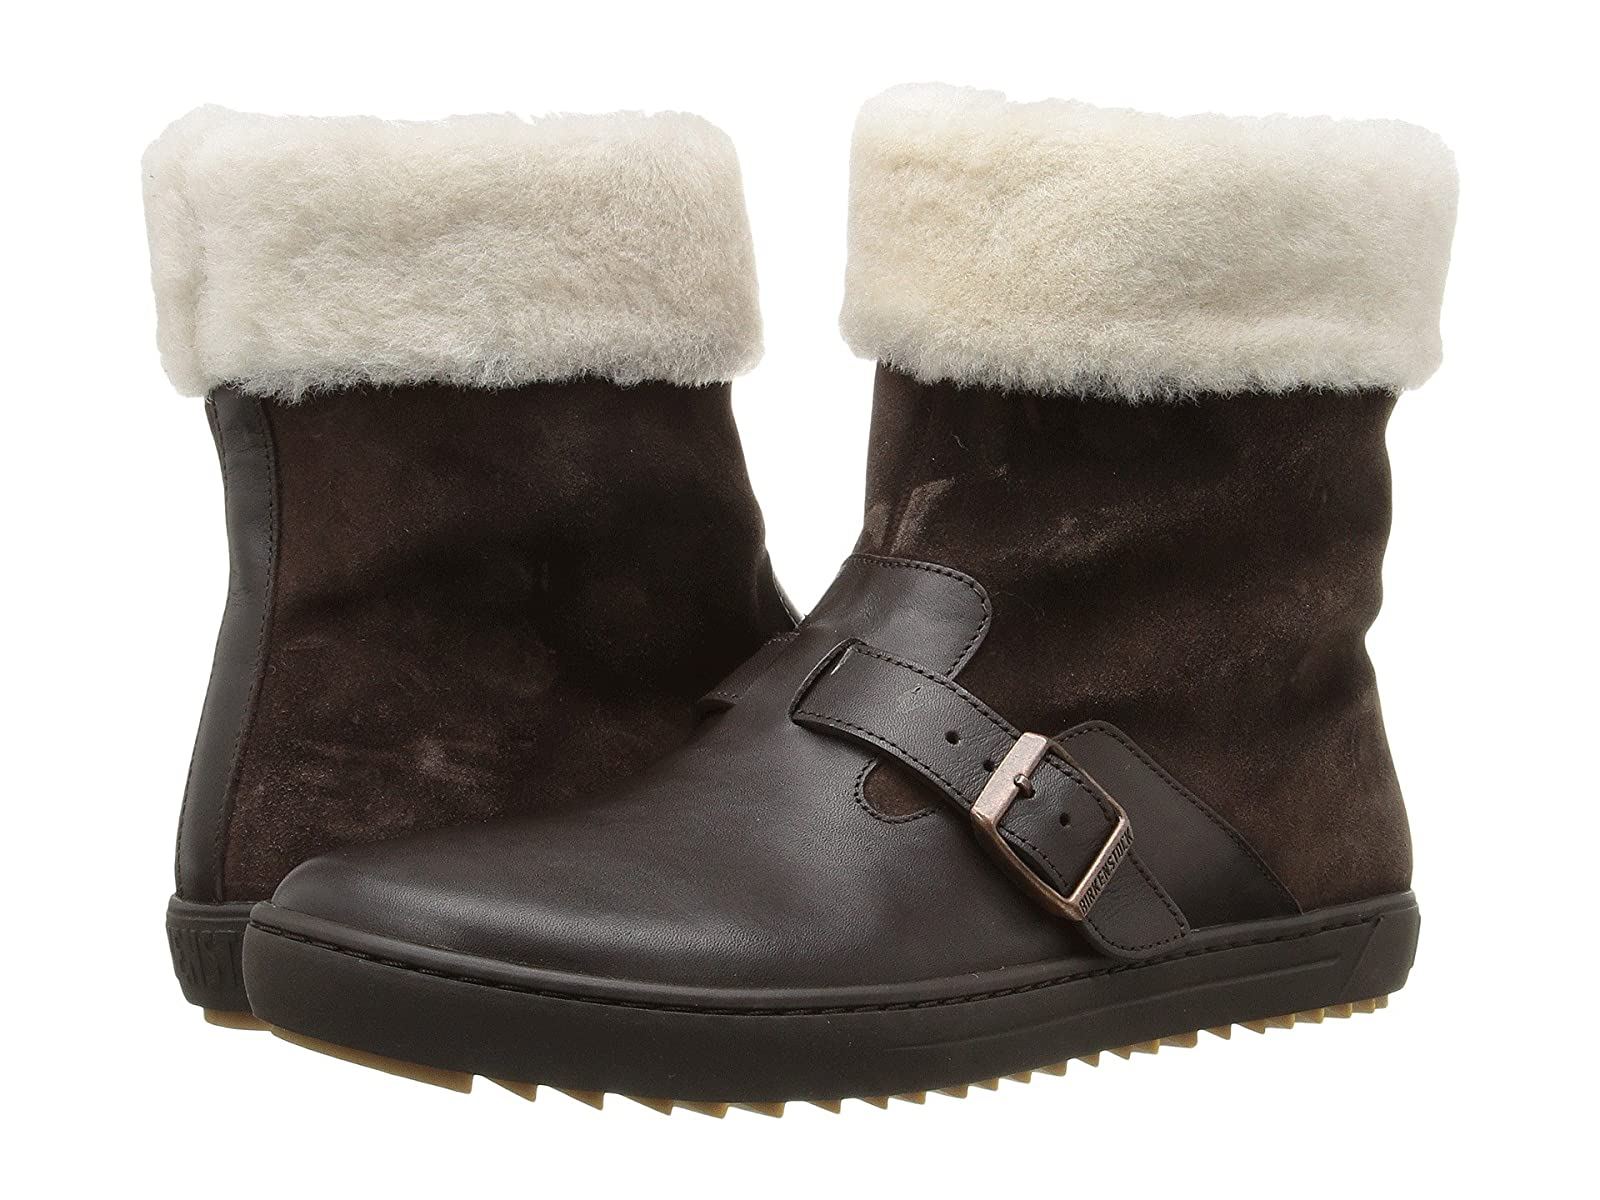 Birkenstock StirlingCheap and distinctive eye-catching shoes